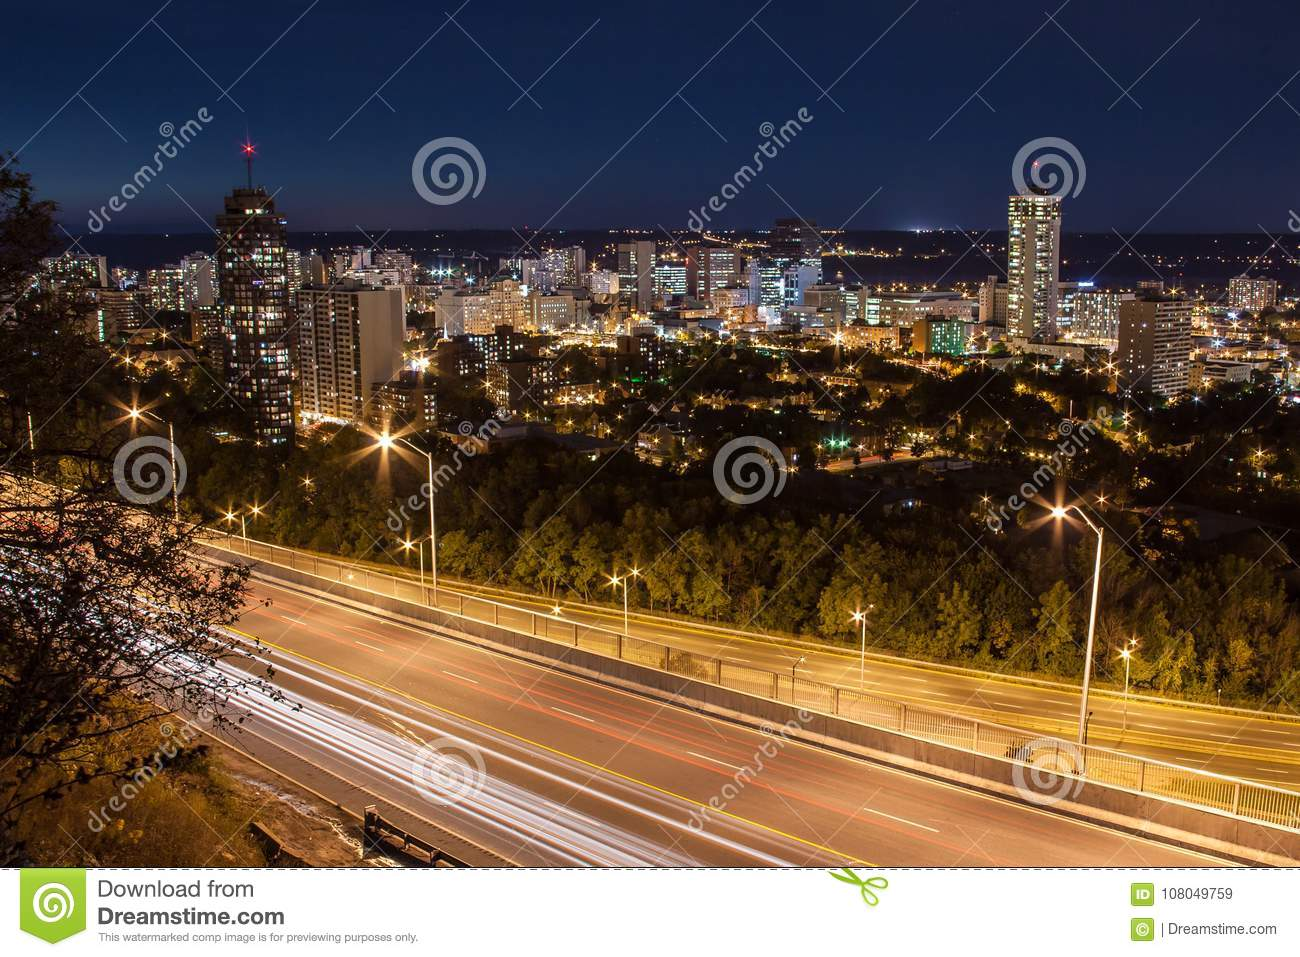 Downtown skyline and light trails from cars at night in Hamilton, Ontario